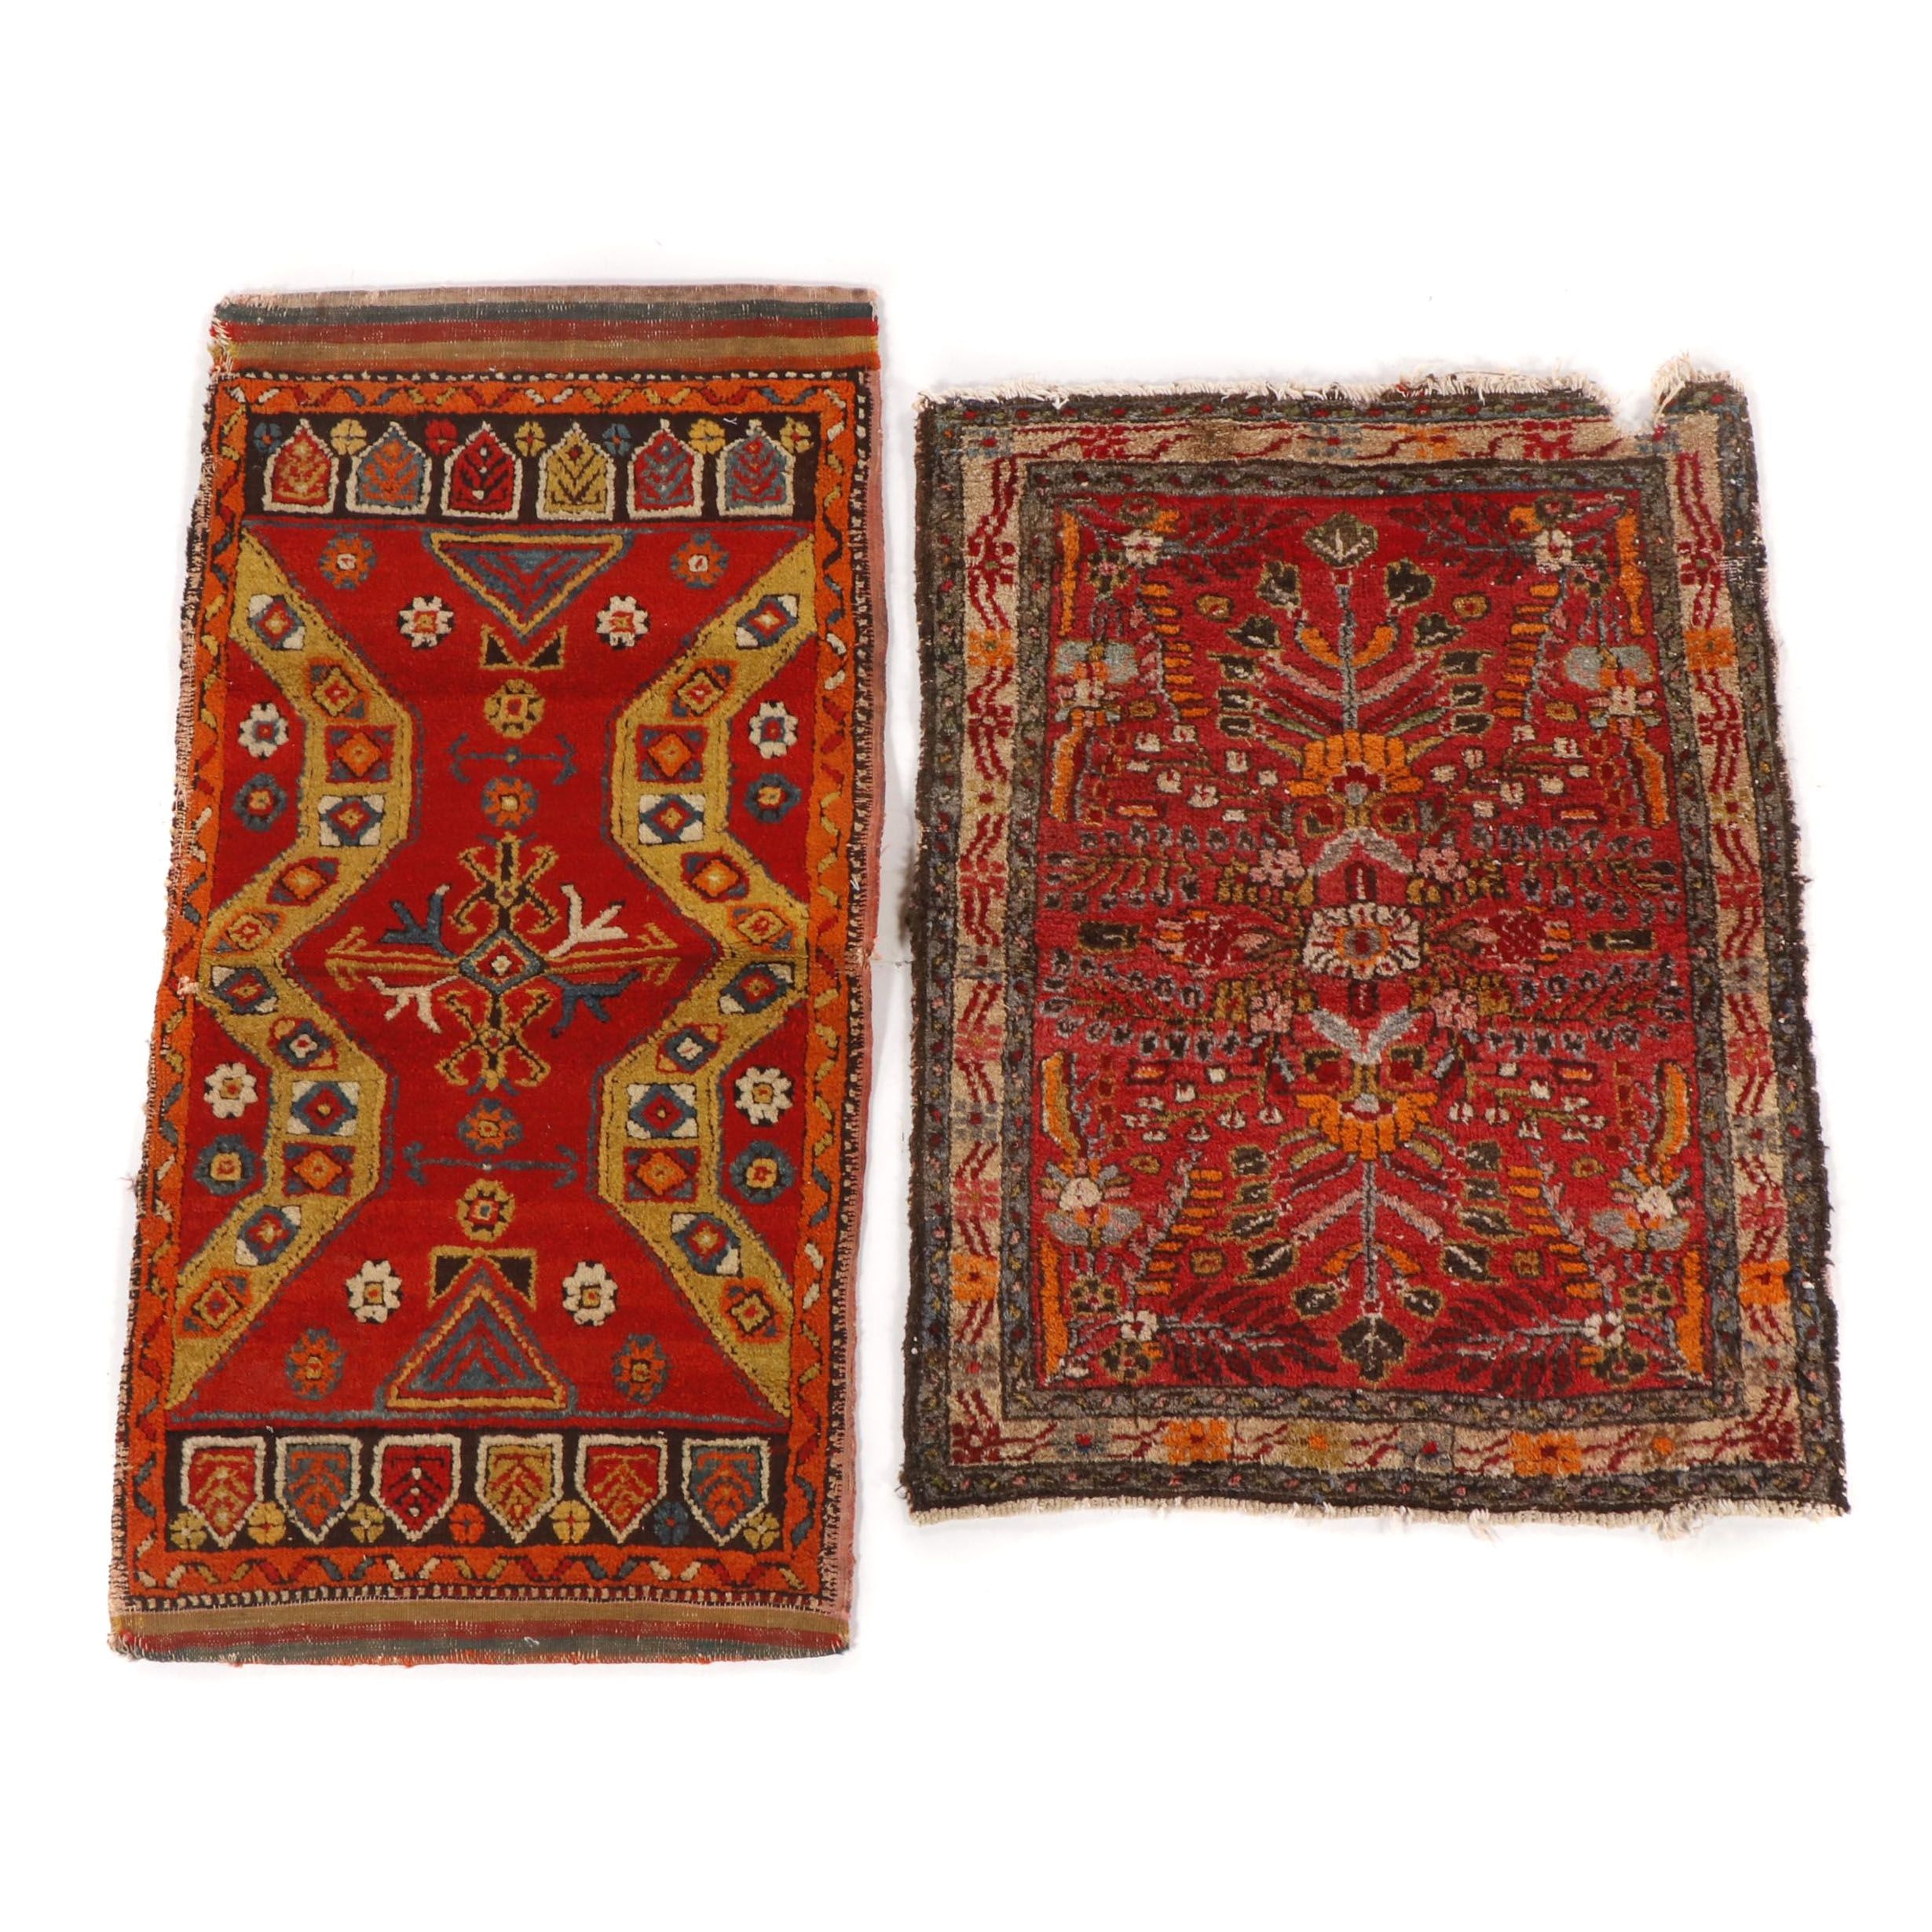 Hand-Knotted Turkish Yuruk and Persian Hamadan Wool Rugs